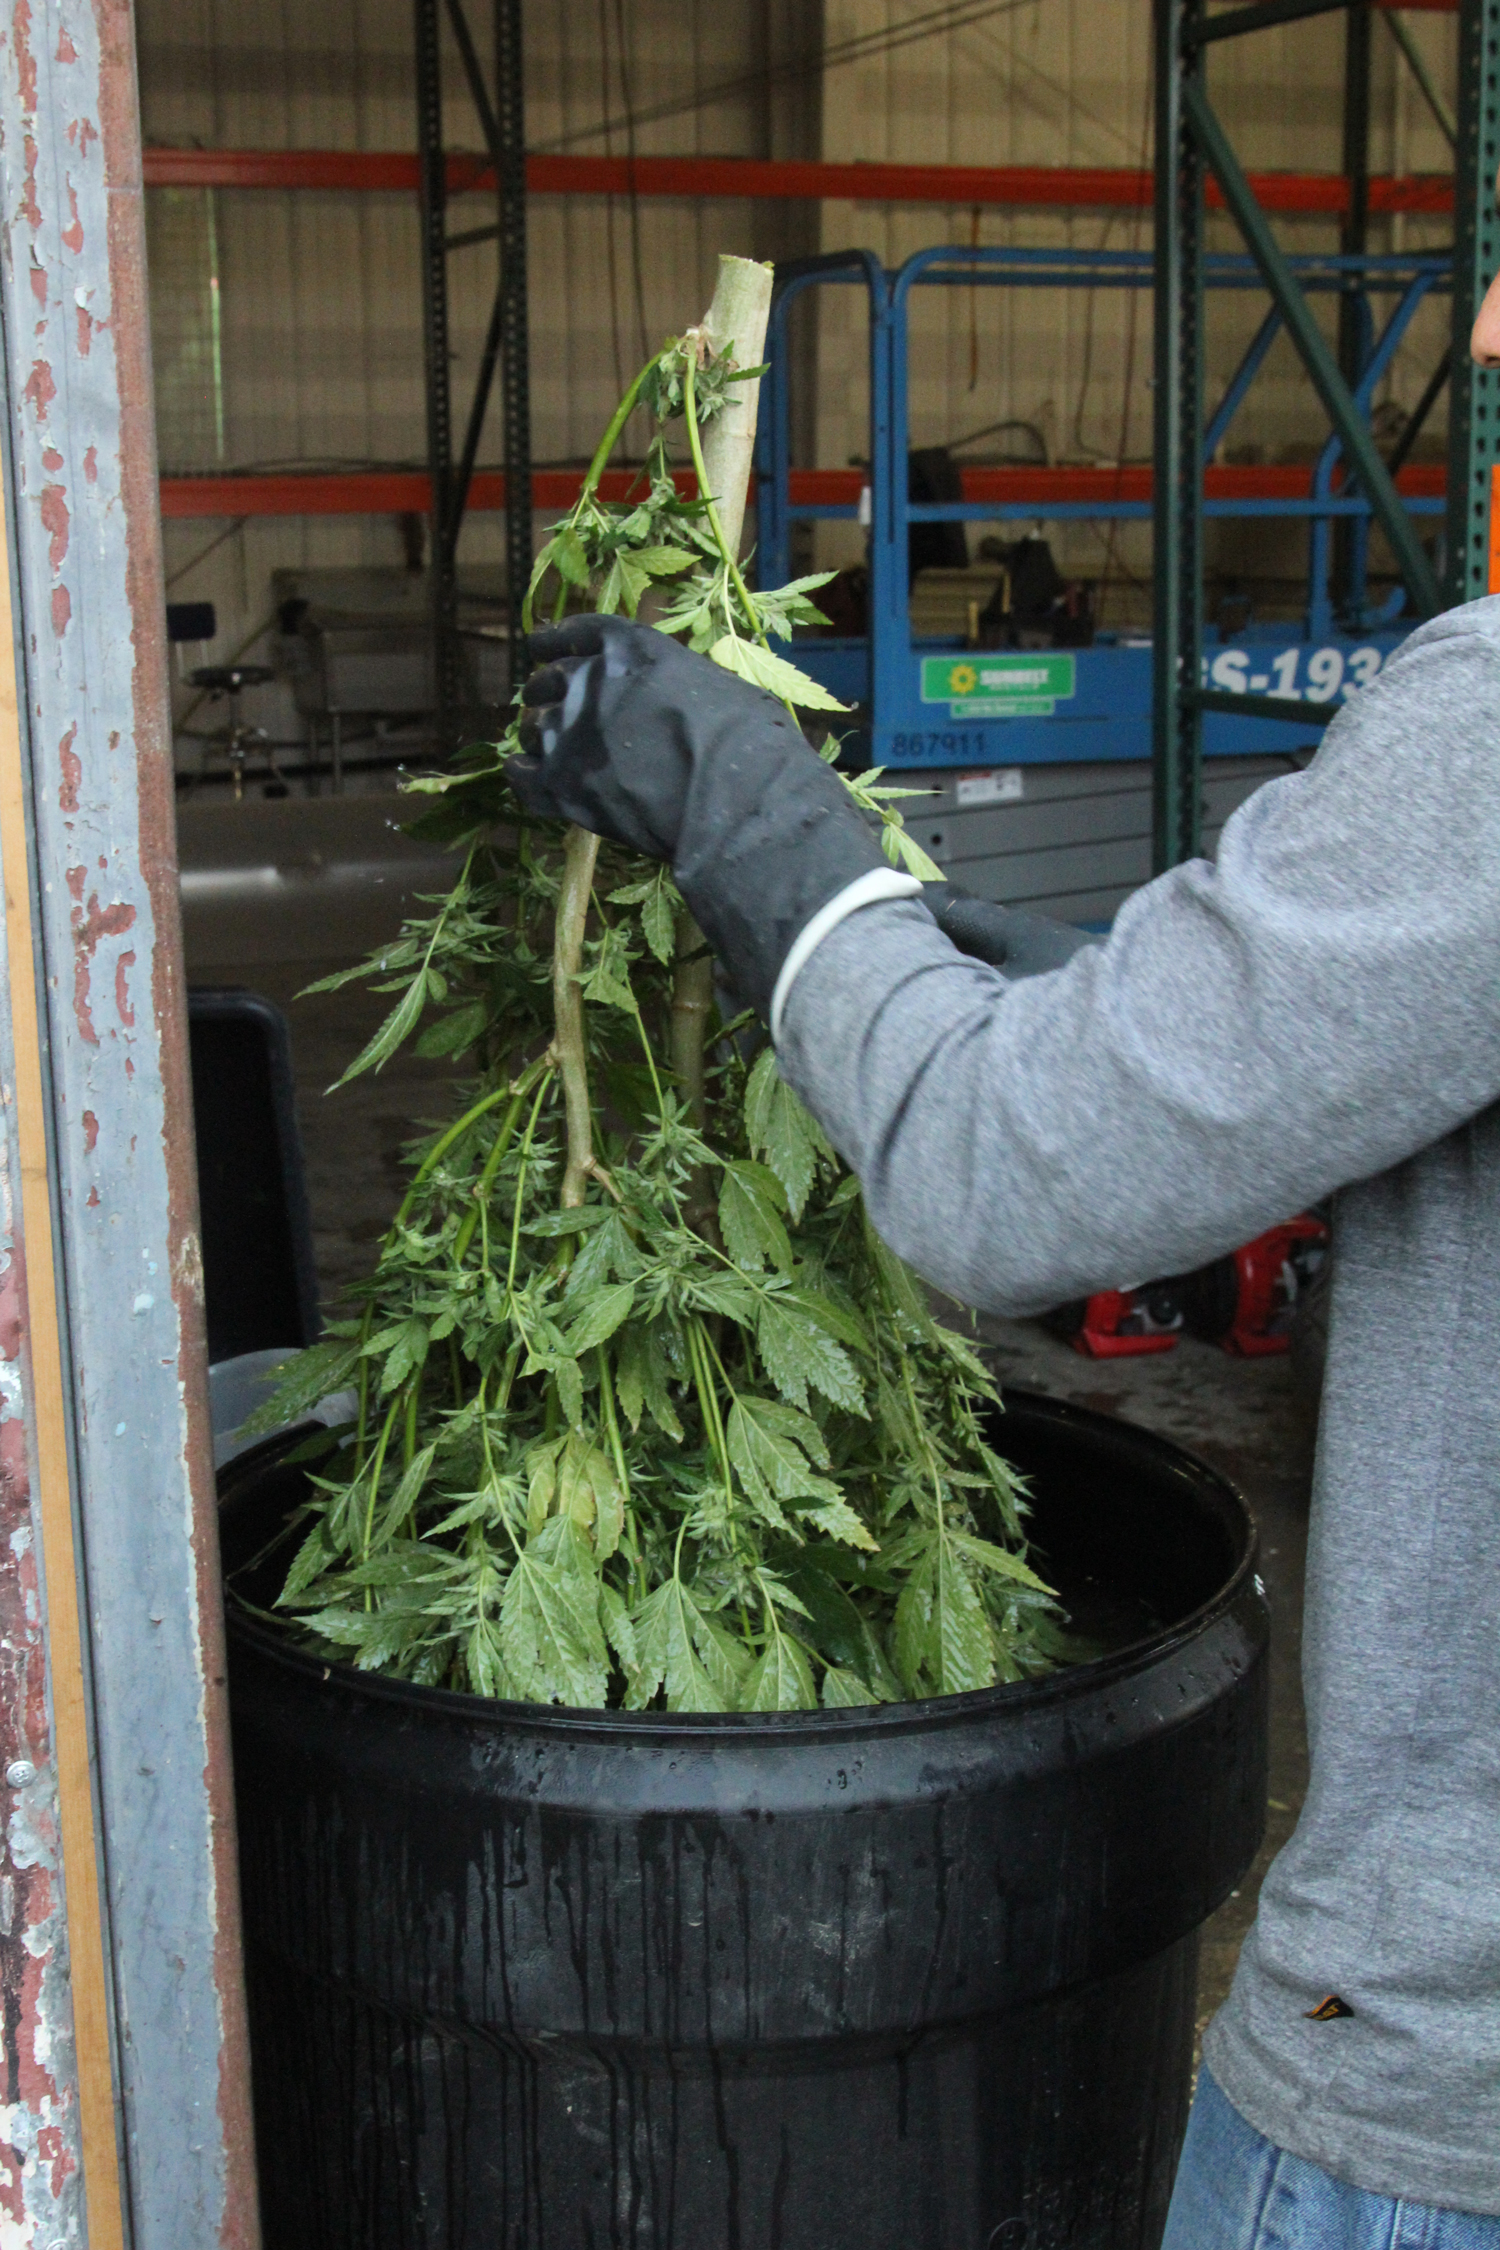 Changed to: Marijuana plants dunked in 1% hydrogen peroxide solution.